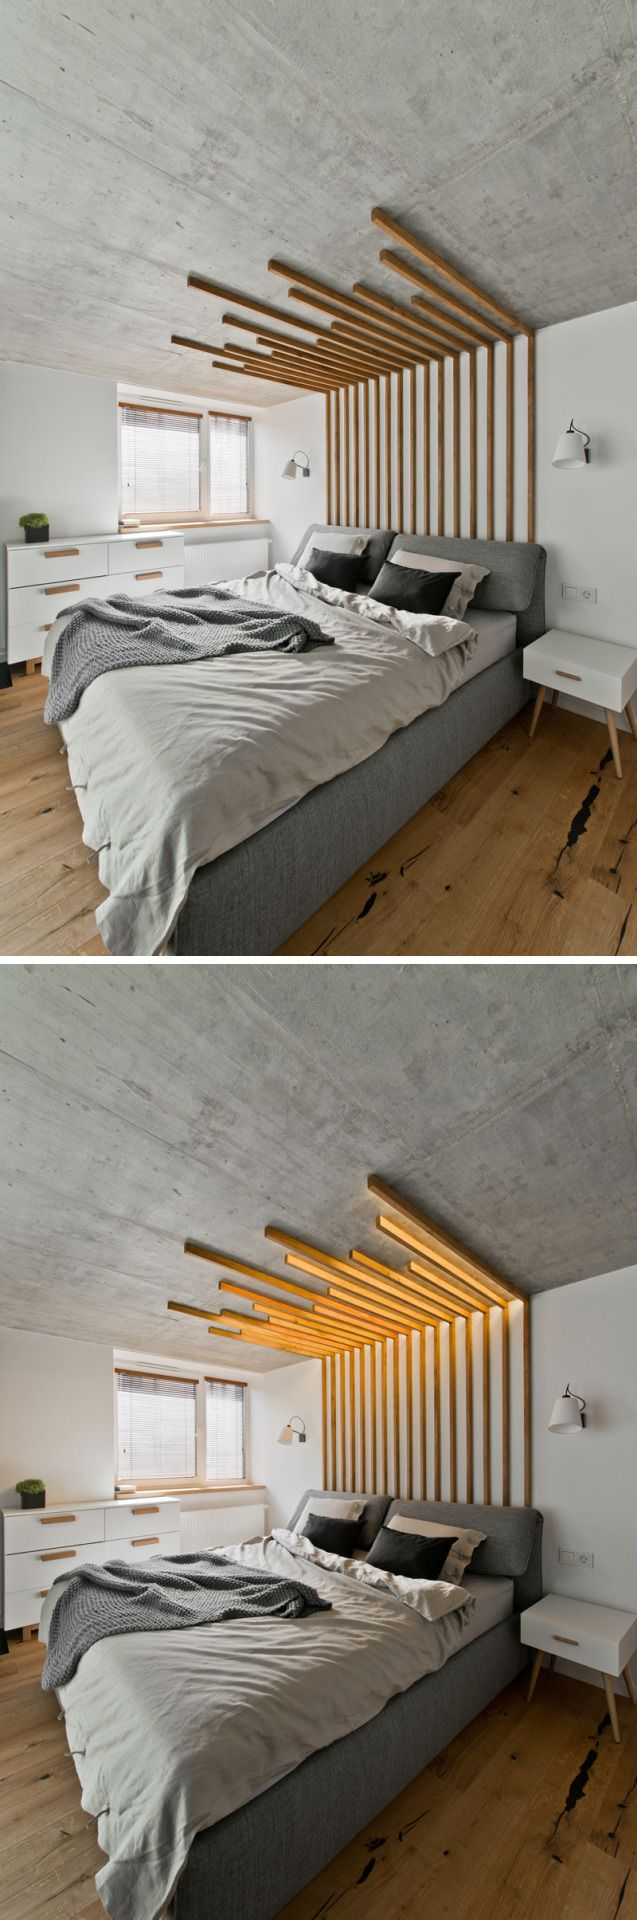 contemporist — This decorative wood feature doubles as lighting |...